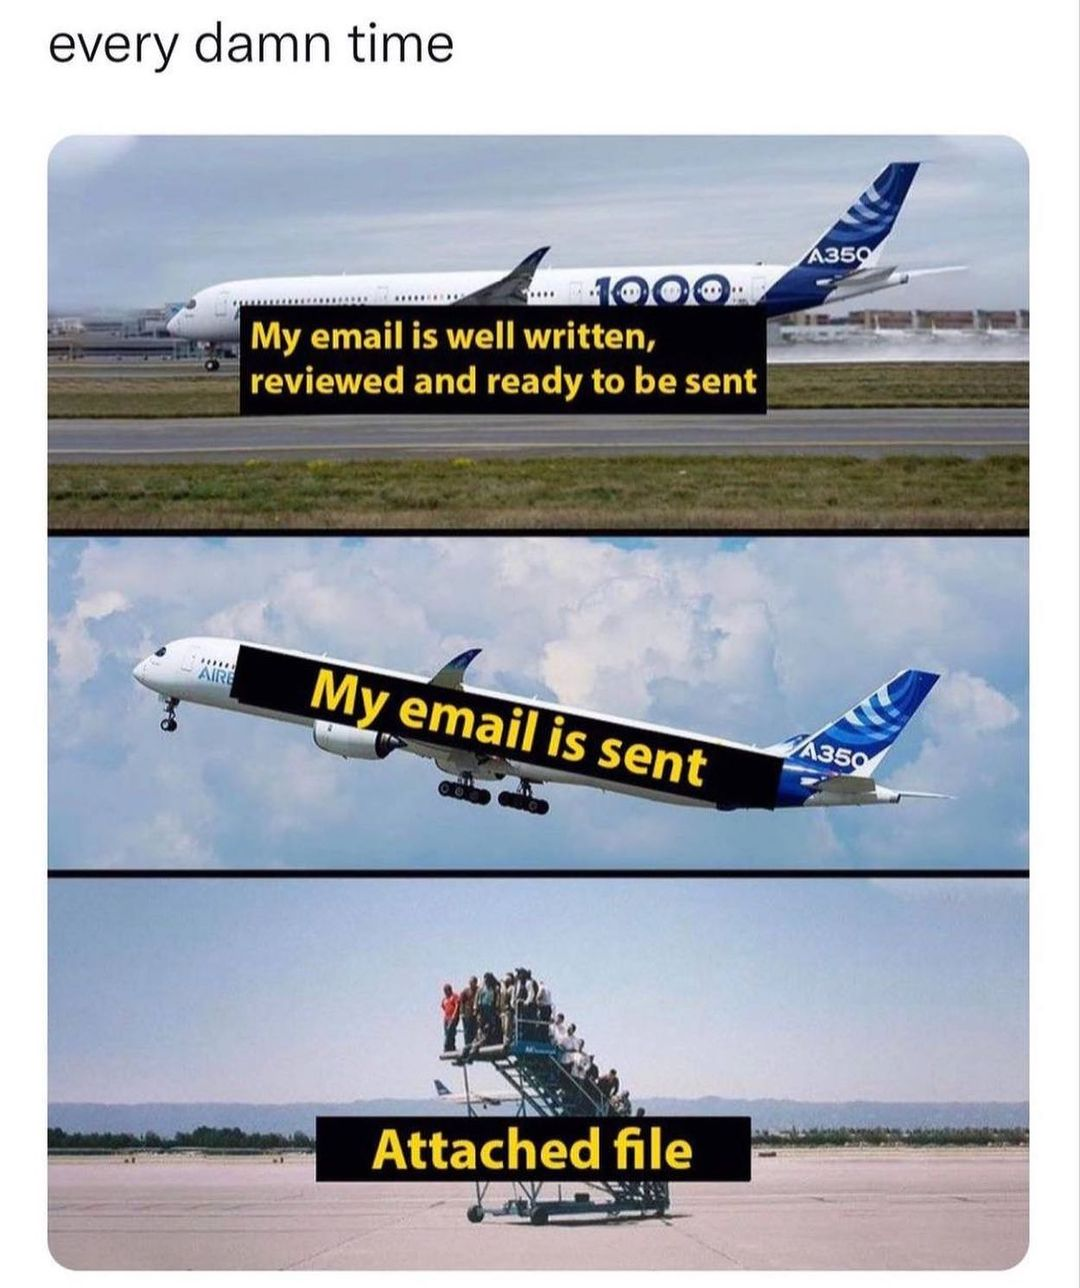 Every damn time. My email is well written, reviewed and ready to be sent. My email is sent. Attached file.